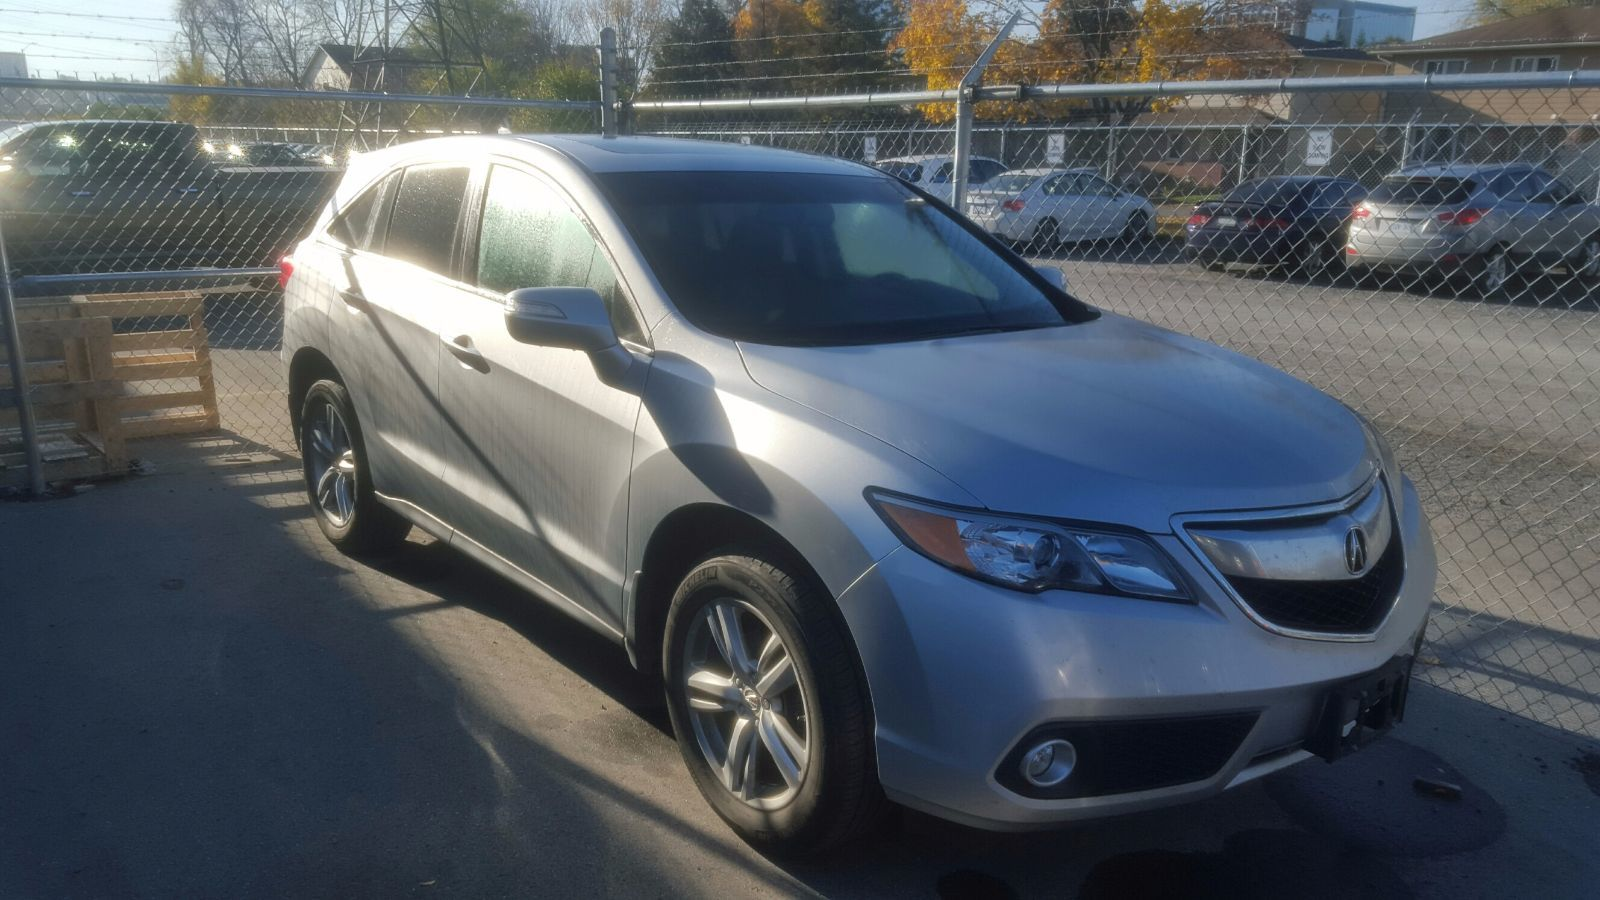 pre owned 2014 acura rdx navigation extended warranty low mileage in ottawa used inventory. Black Bedroom Furniture Sets. Home Design Ideas